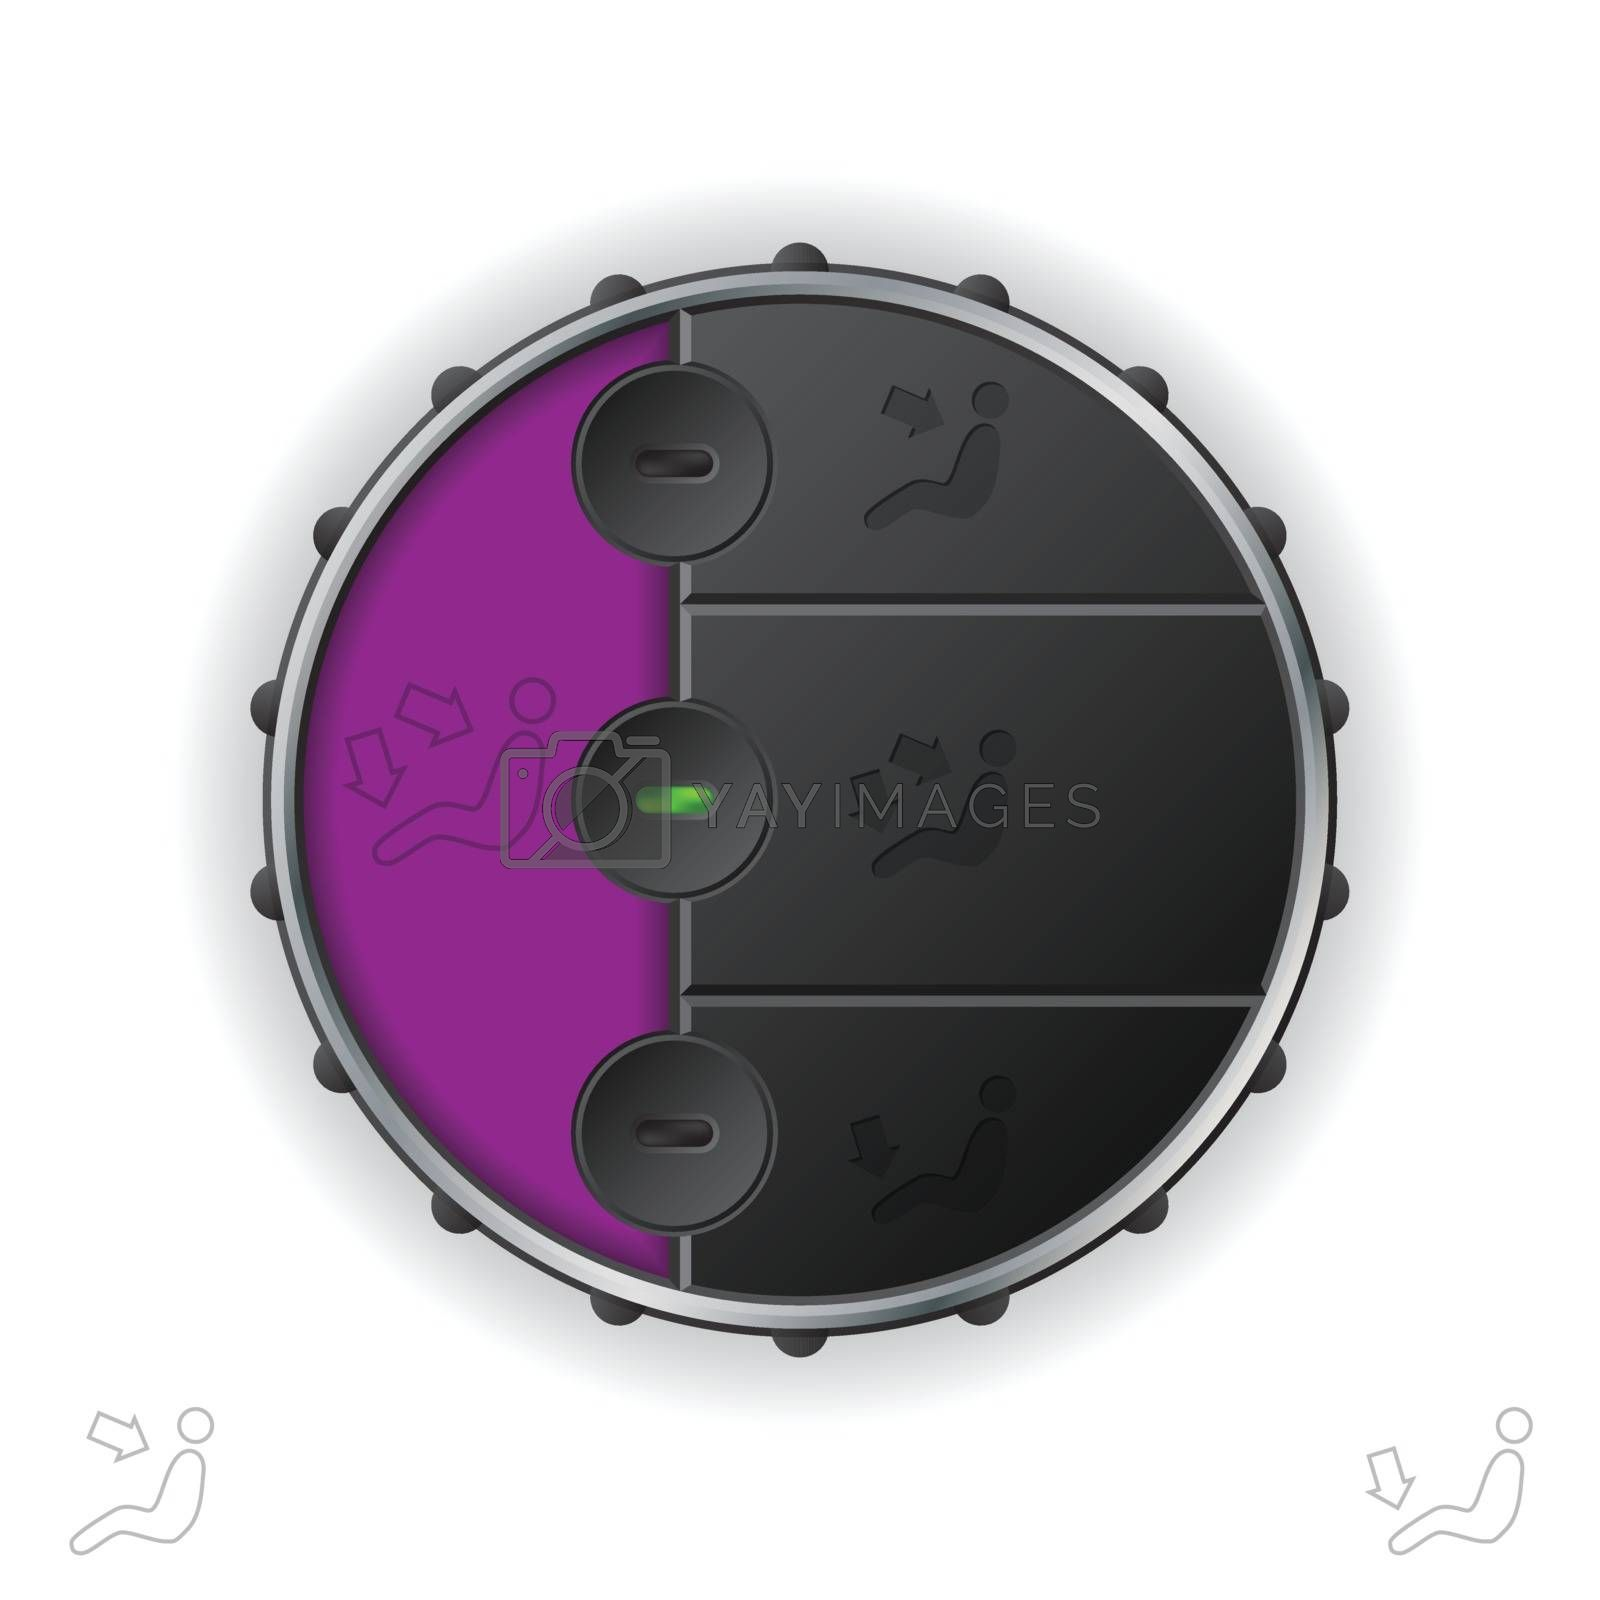 Car clima air flow control with purple lcd